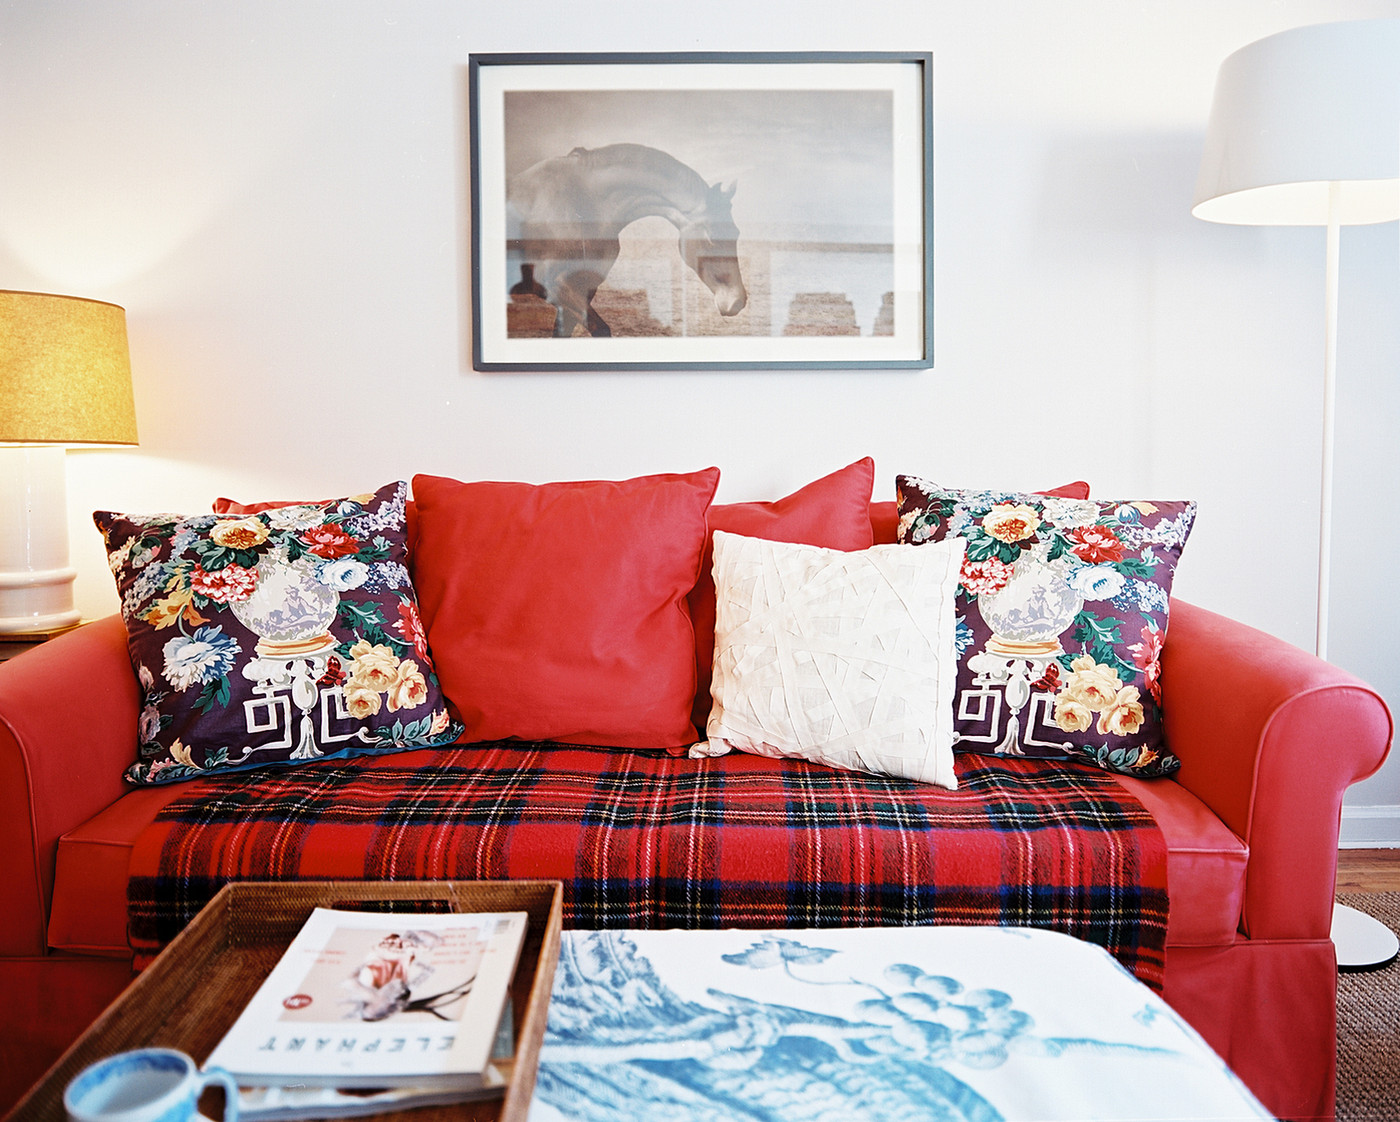 Pillow Ideas For Red Couch: Red Couch Photos  Design  Ideas  Remodel  and Decor   Lonny,